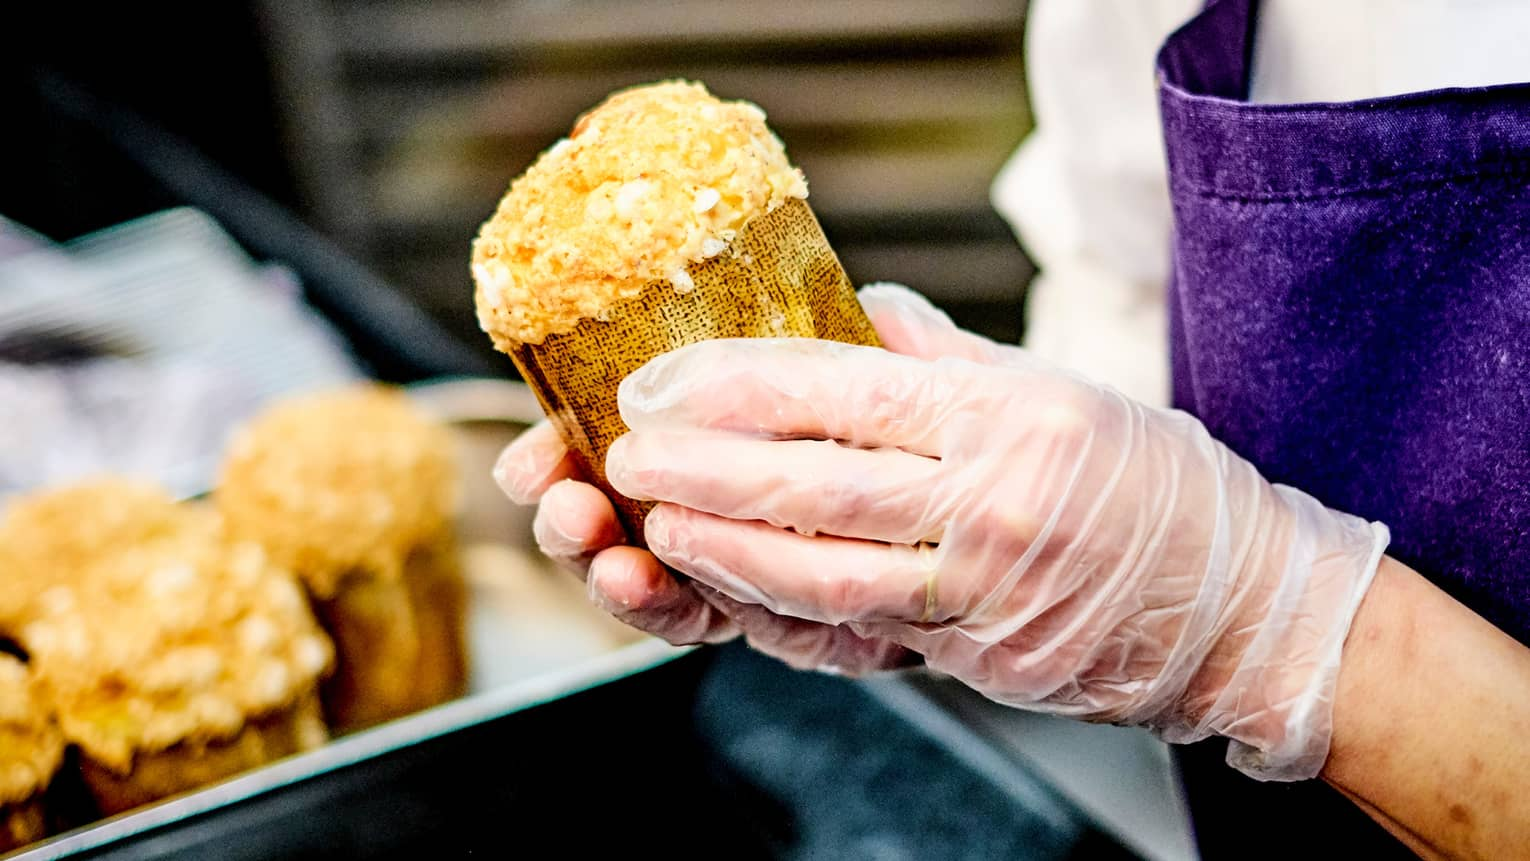 Close-up of chef pastry wearing gloves, holding rolled baked goods